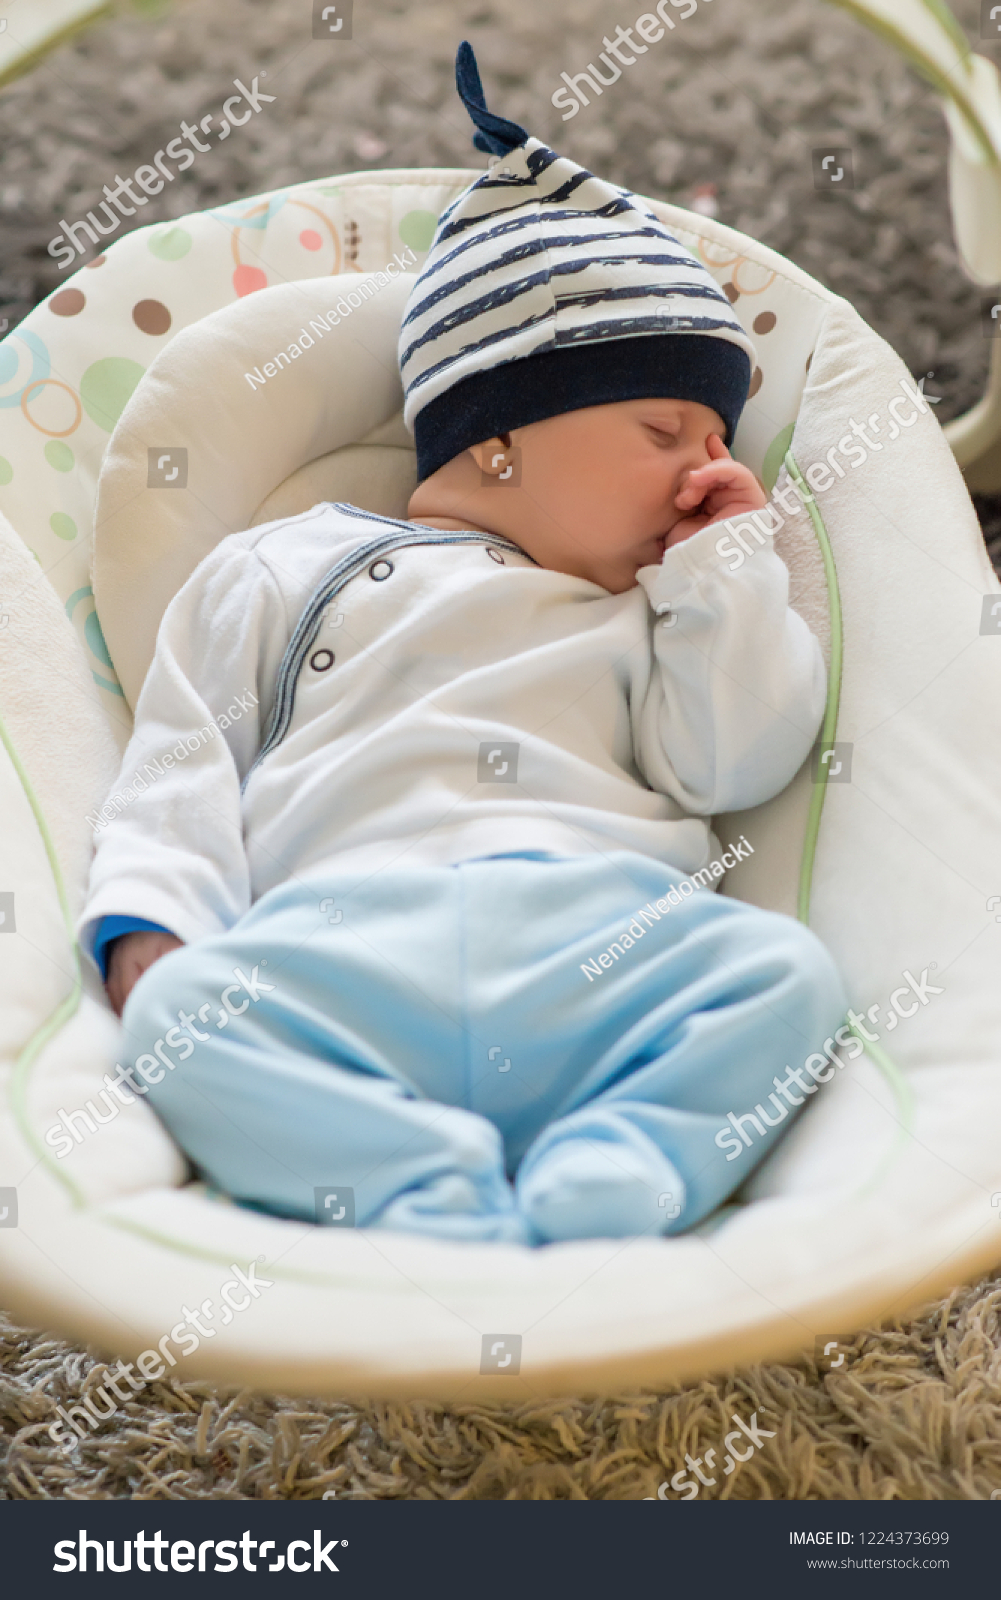 baby sleeping chair bliss hammocks zero gravity swing automatic electrical stock photo edit now in and sucking left thumb